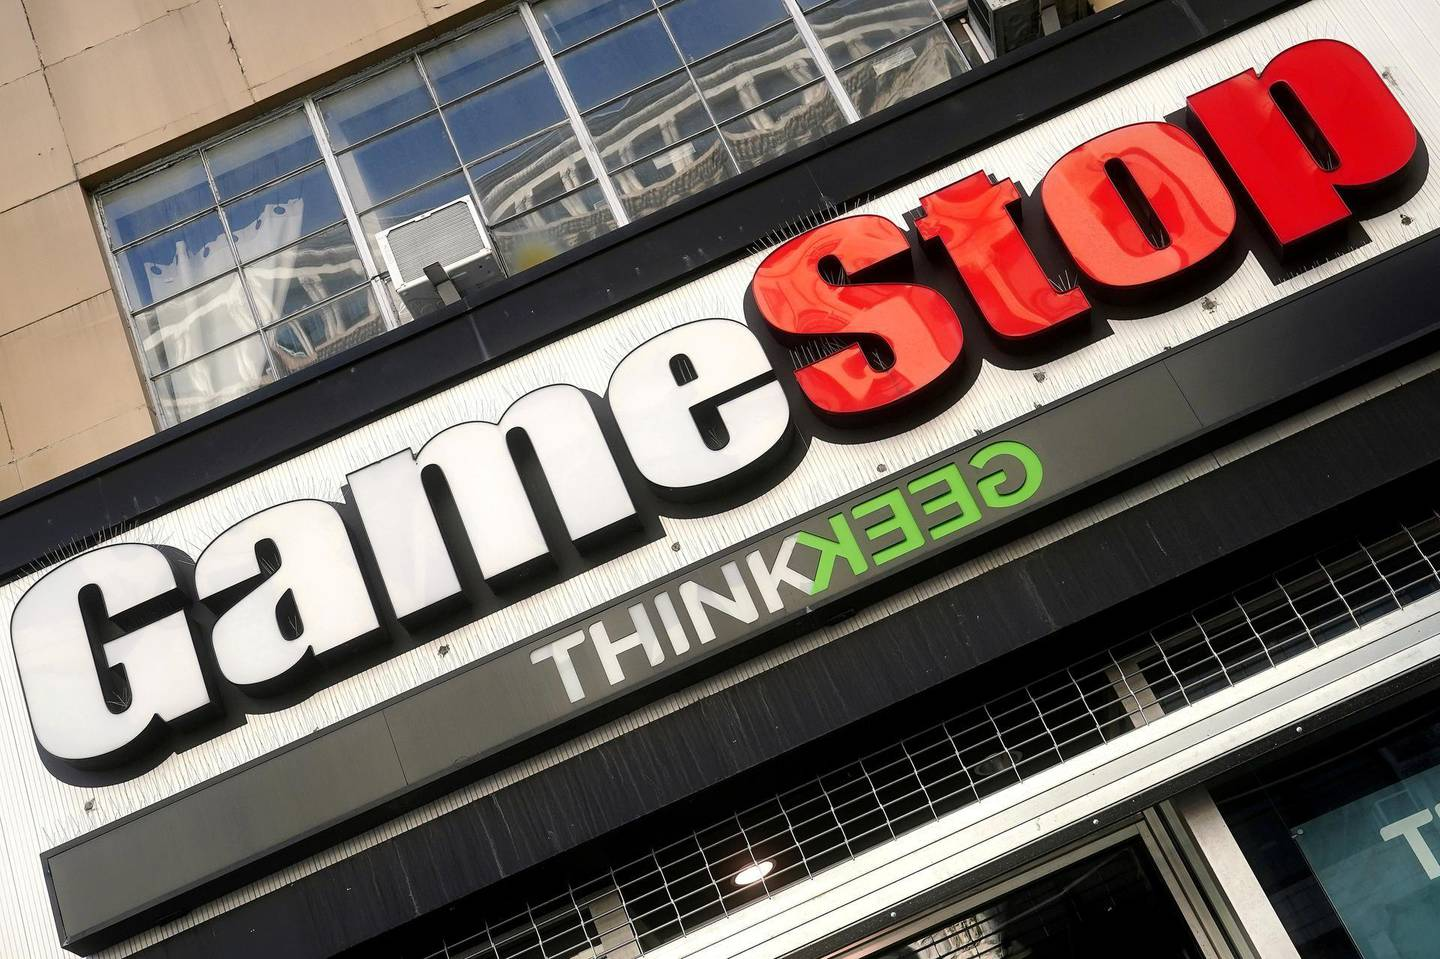 FILE PHOTO: A GameStop store is pictured in the Manhattan borough of New York City, New York, U.S., January 29, 2021. REUTERS/Carlo Allegri/File Photo